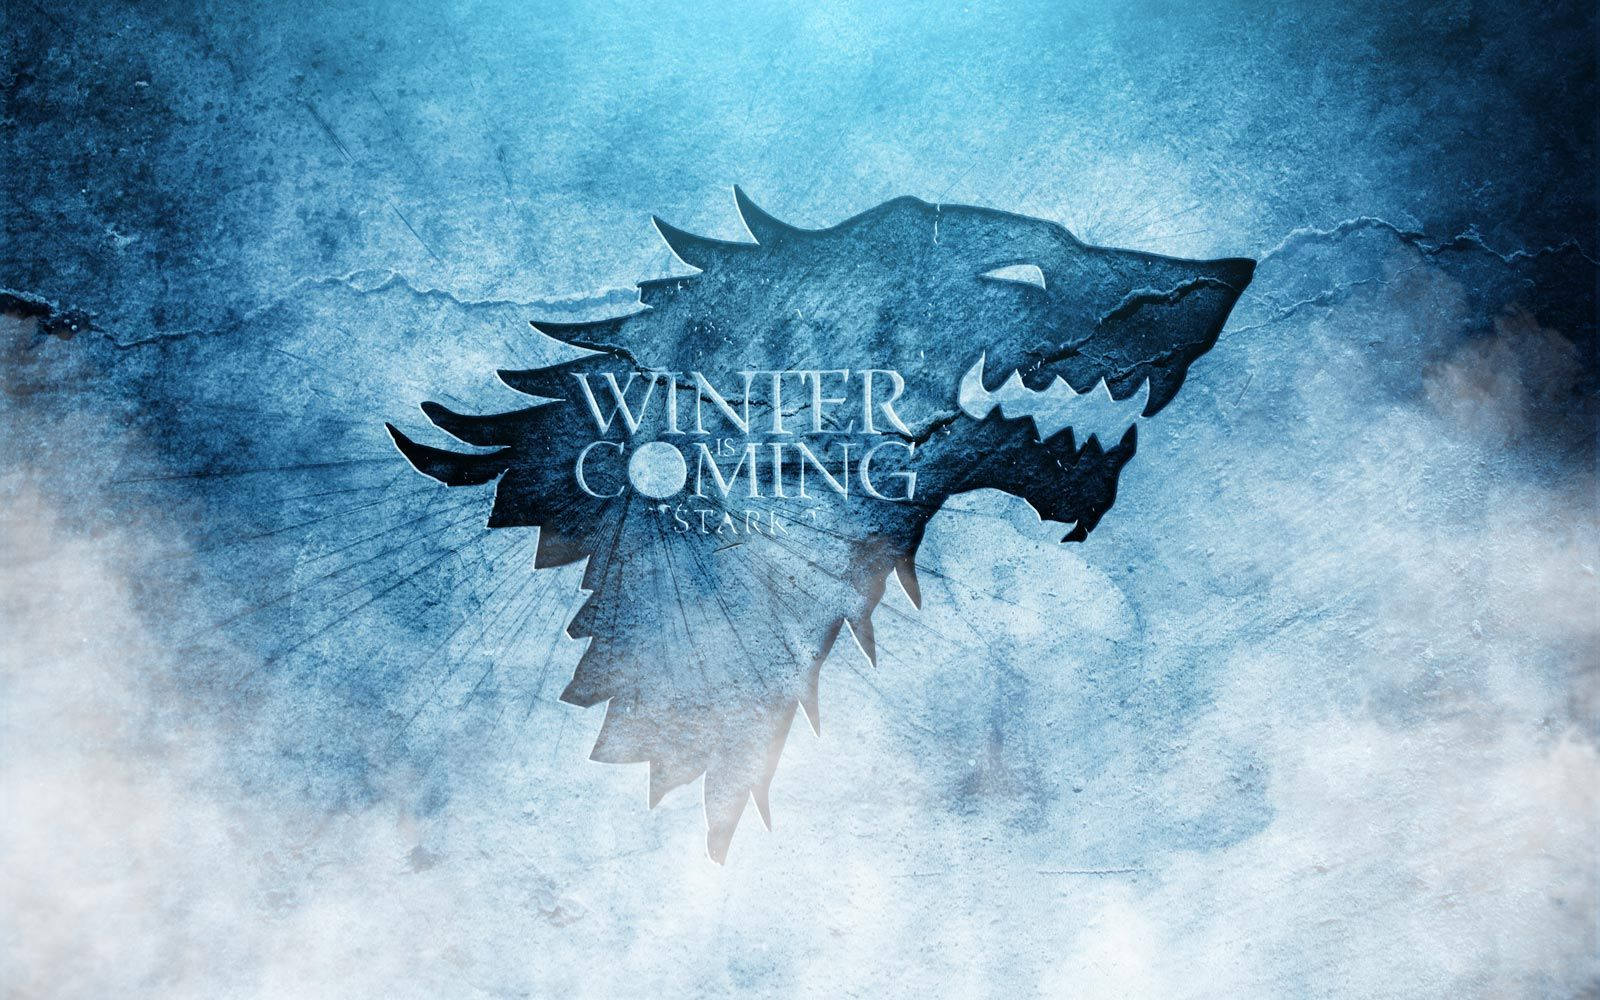 Game Of Thrones House Stark By Ricreations Deviantart Com On Deviantart Winter Is Coming Wallpaper Game Of Thrones Winter Winter Is Coming Stark